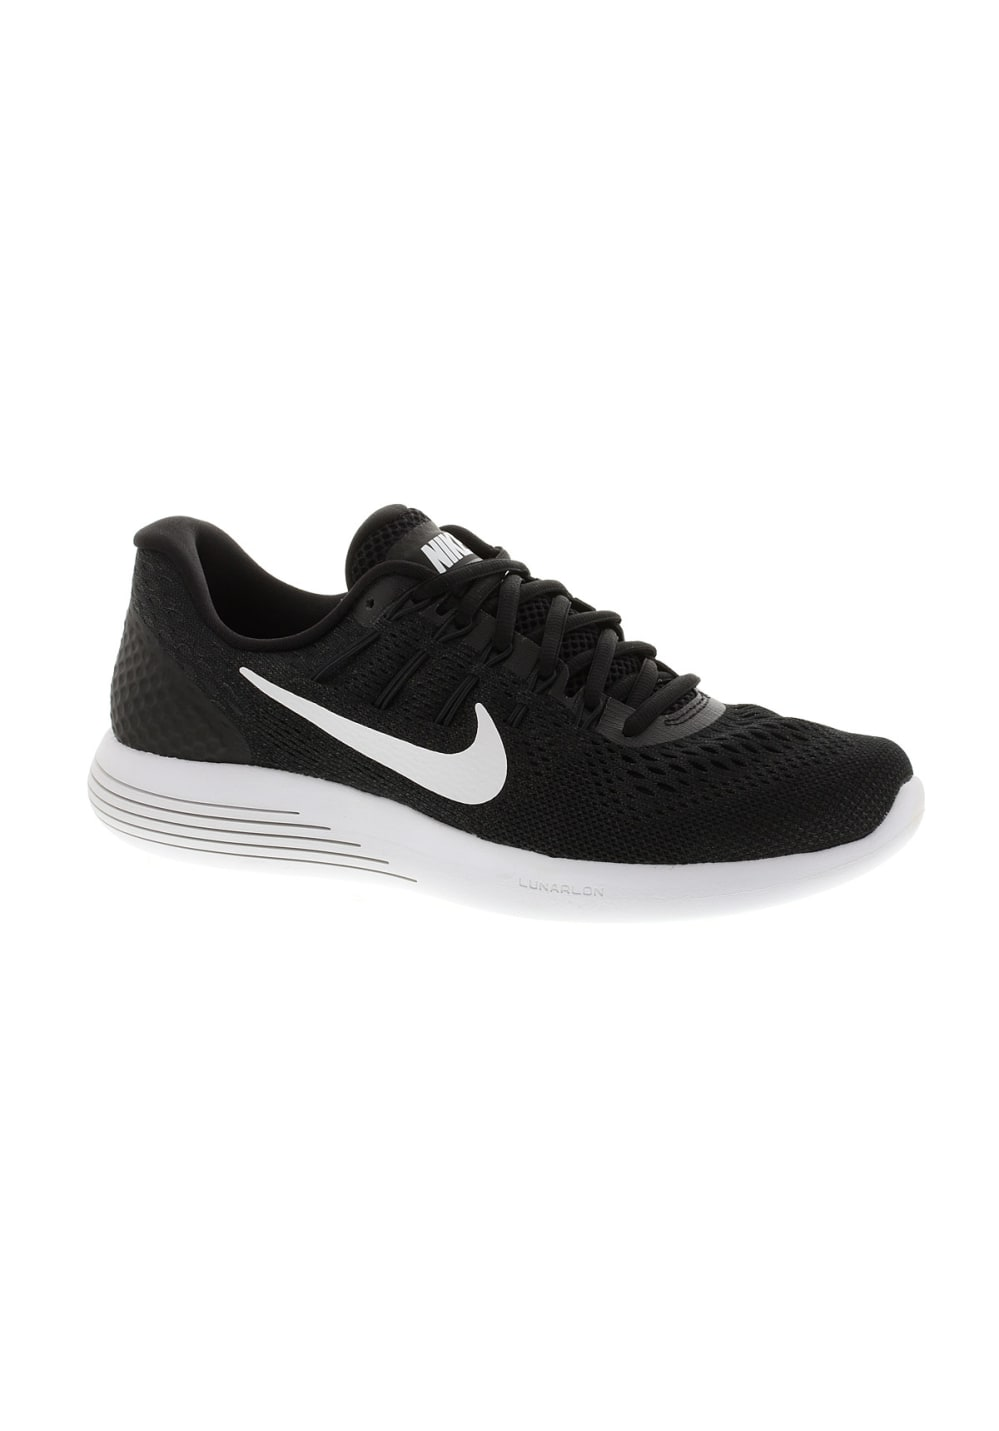 b8f7ae0e790e ... Nike Lunarglide 8 - Running shoes for Women - Black. Back to Overview.  1  2  3  4  5. Previous